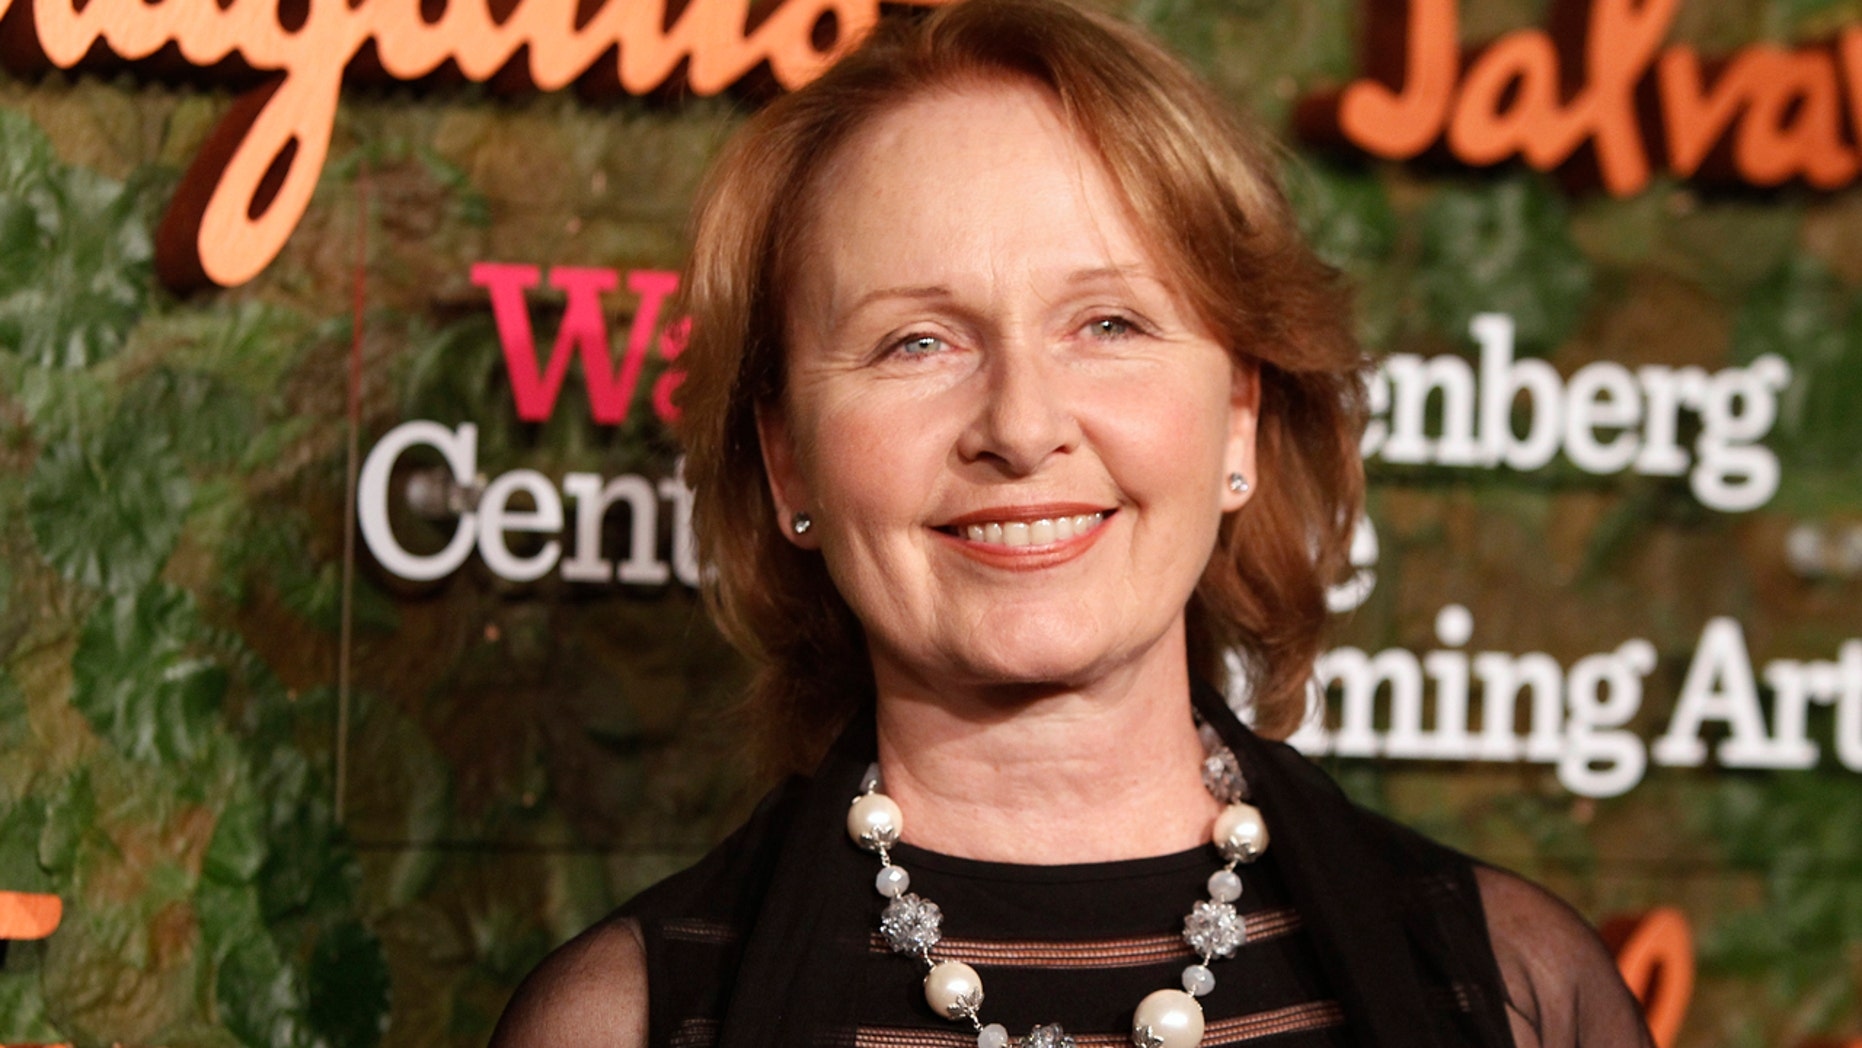 Kate Burton, daughter of late actor Richard Burton, arrives at the Wallis Annenberg Center for the Performing Arts Inaugural Gala in Beverly Hills, California October 17, 2013.